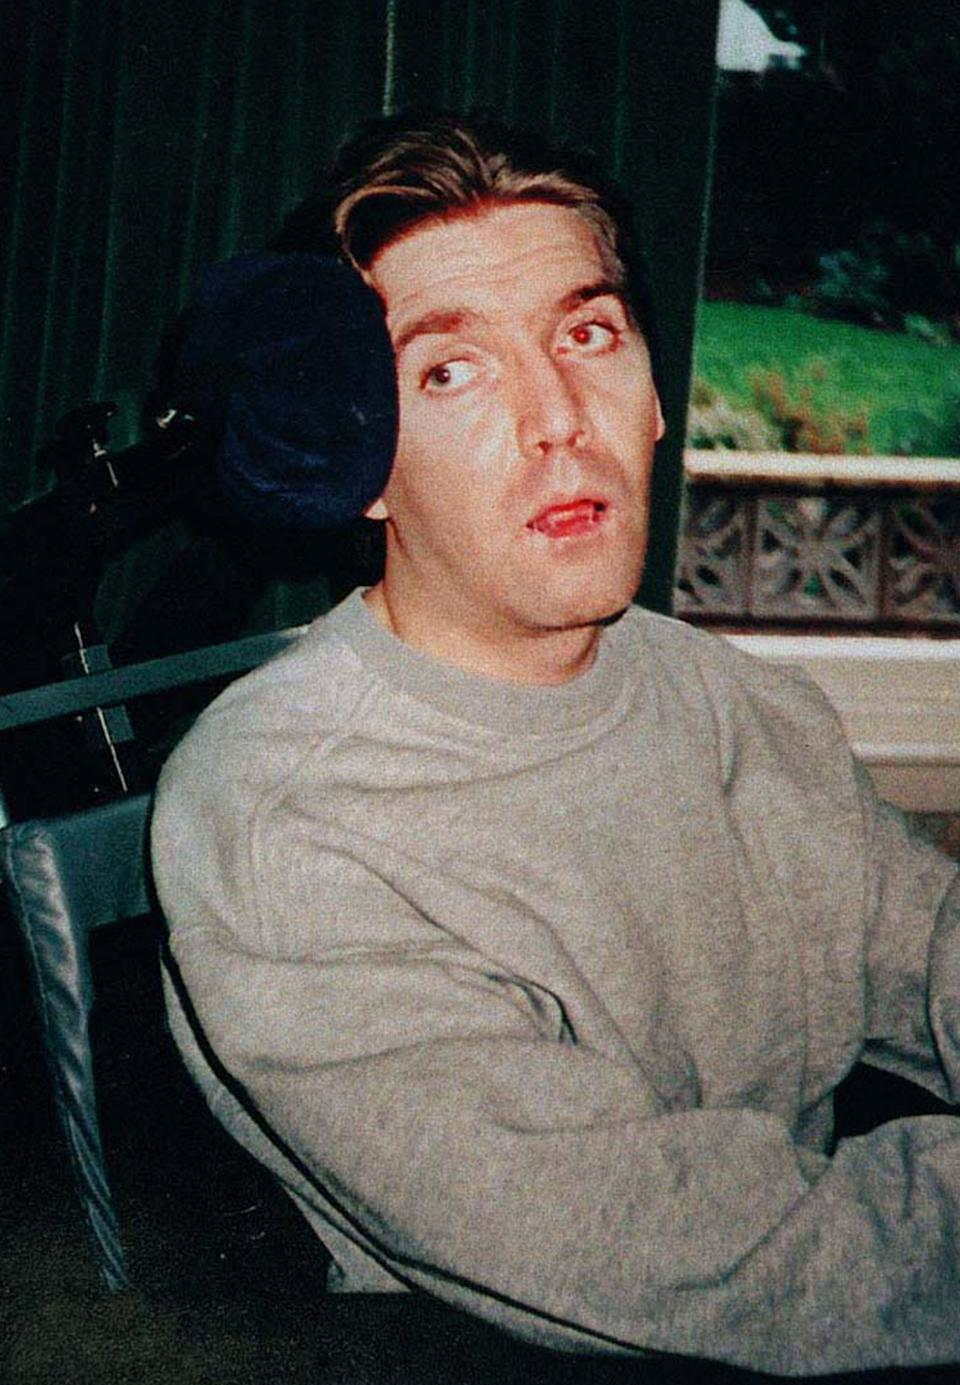 Undated file photo of Andrew Devine (then aged 30) after emerging from an eight-year vegetative state following the Hillsborough disaster (Family handout/PA) (PA Media)